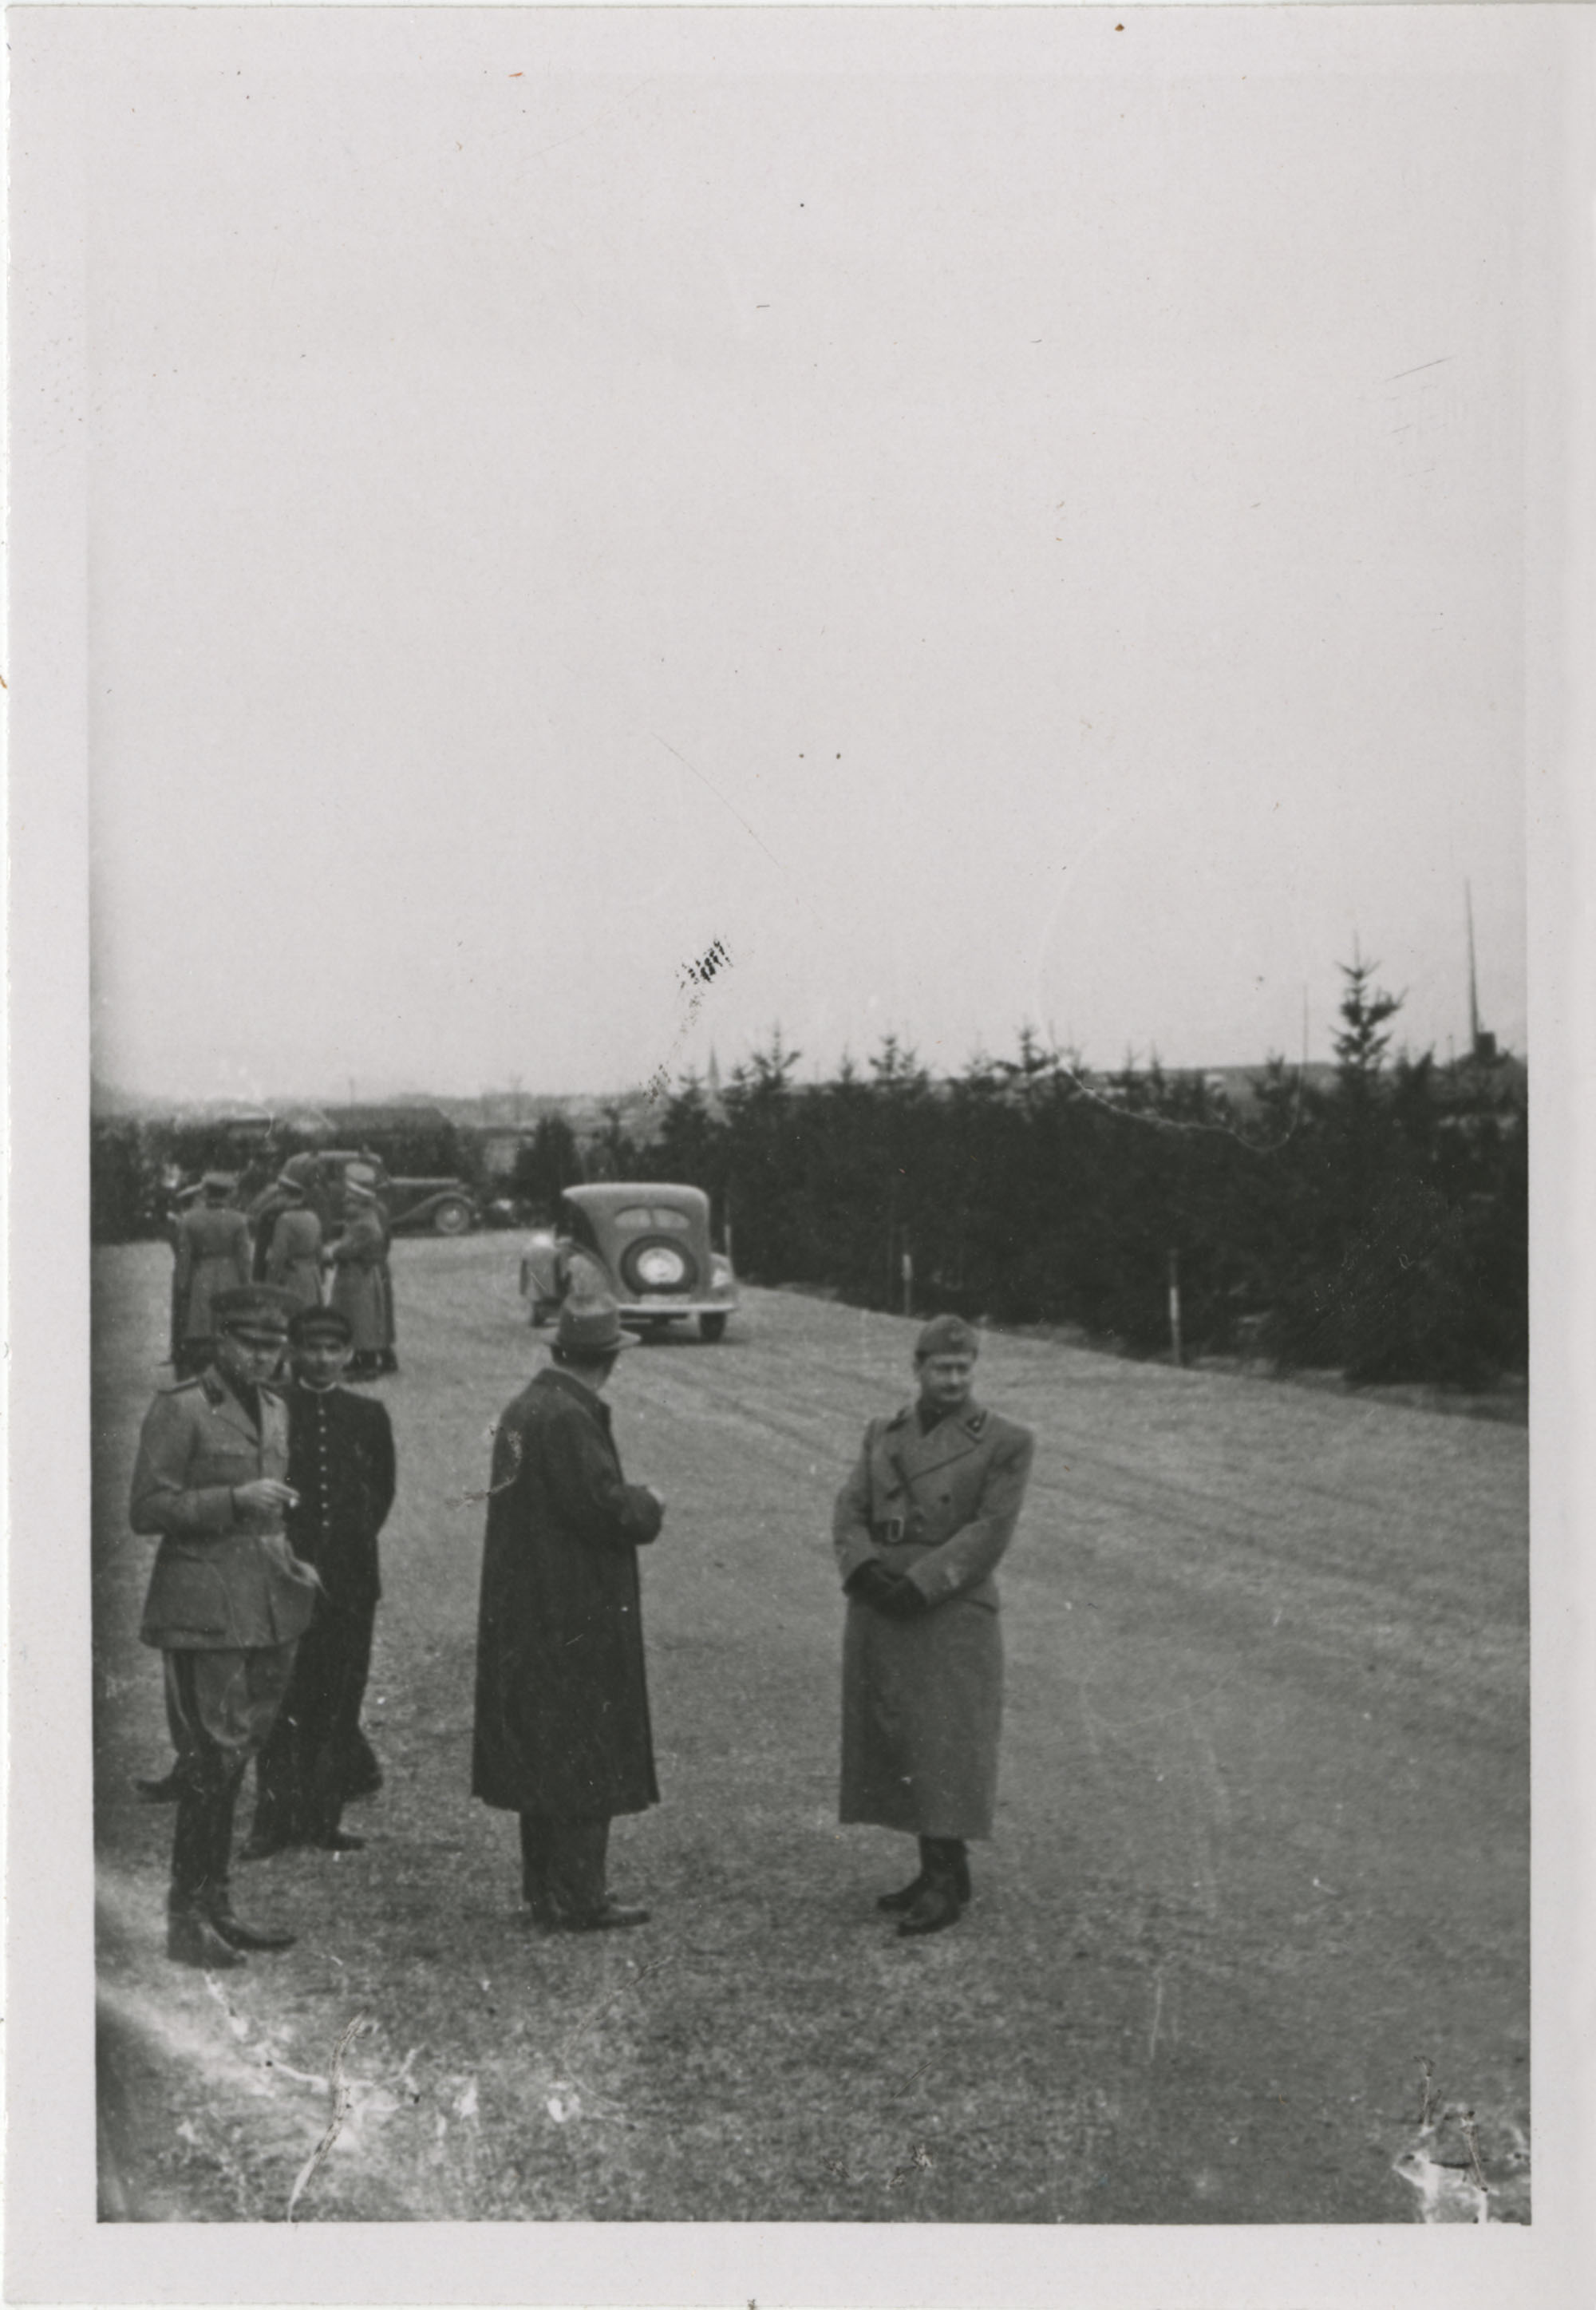 Mario Pansa greeting military personnel, Photograph 11